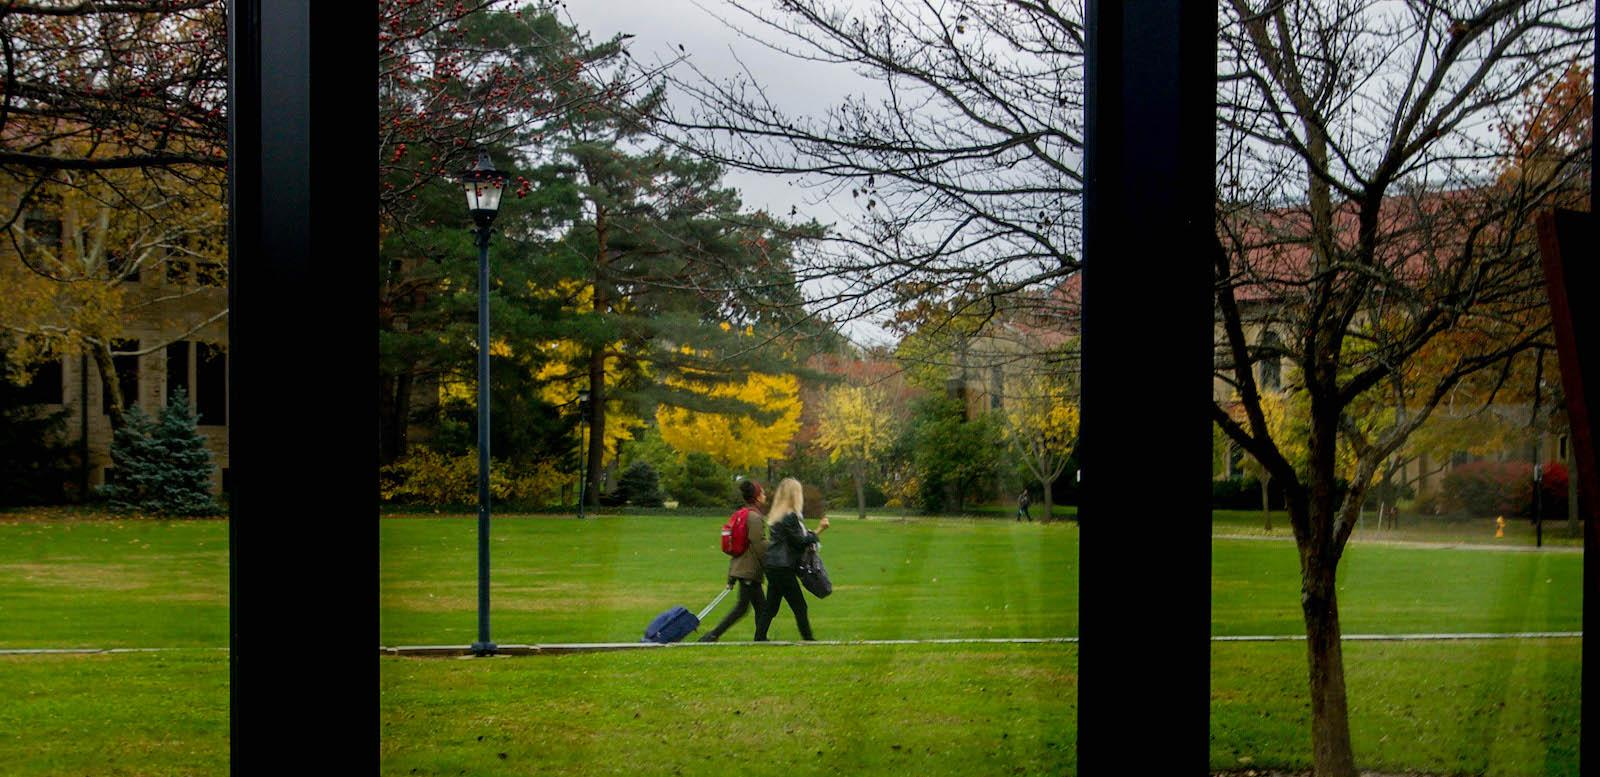 two people walking across campus with suitcase.